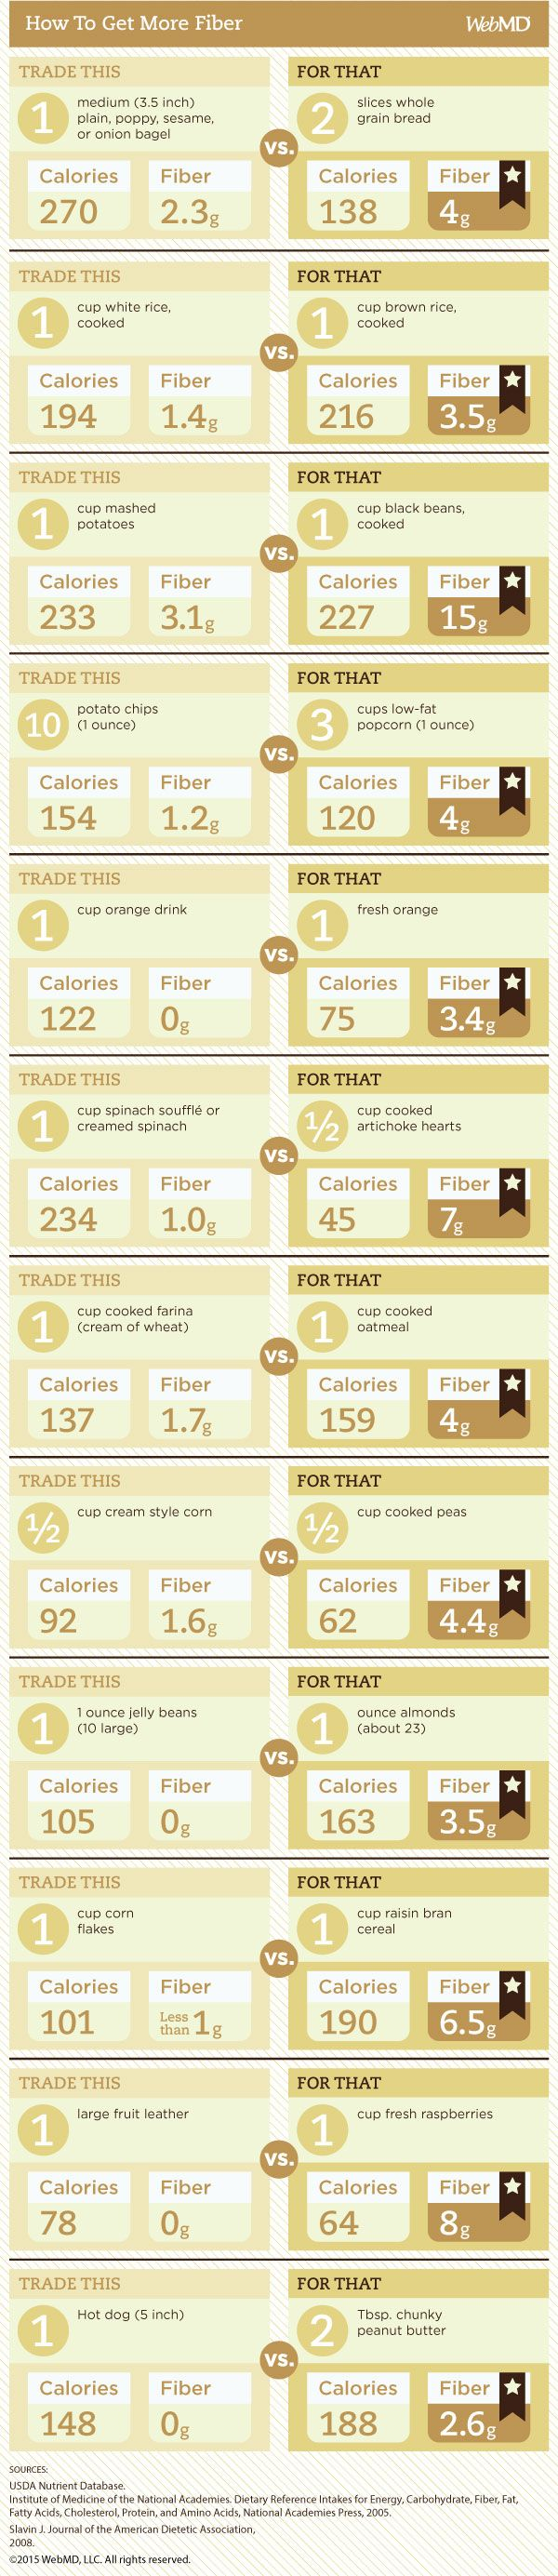 How to get more fiber with these simple trades! #DoctorsCare